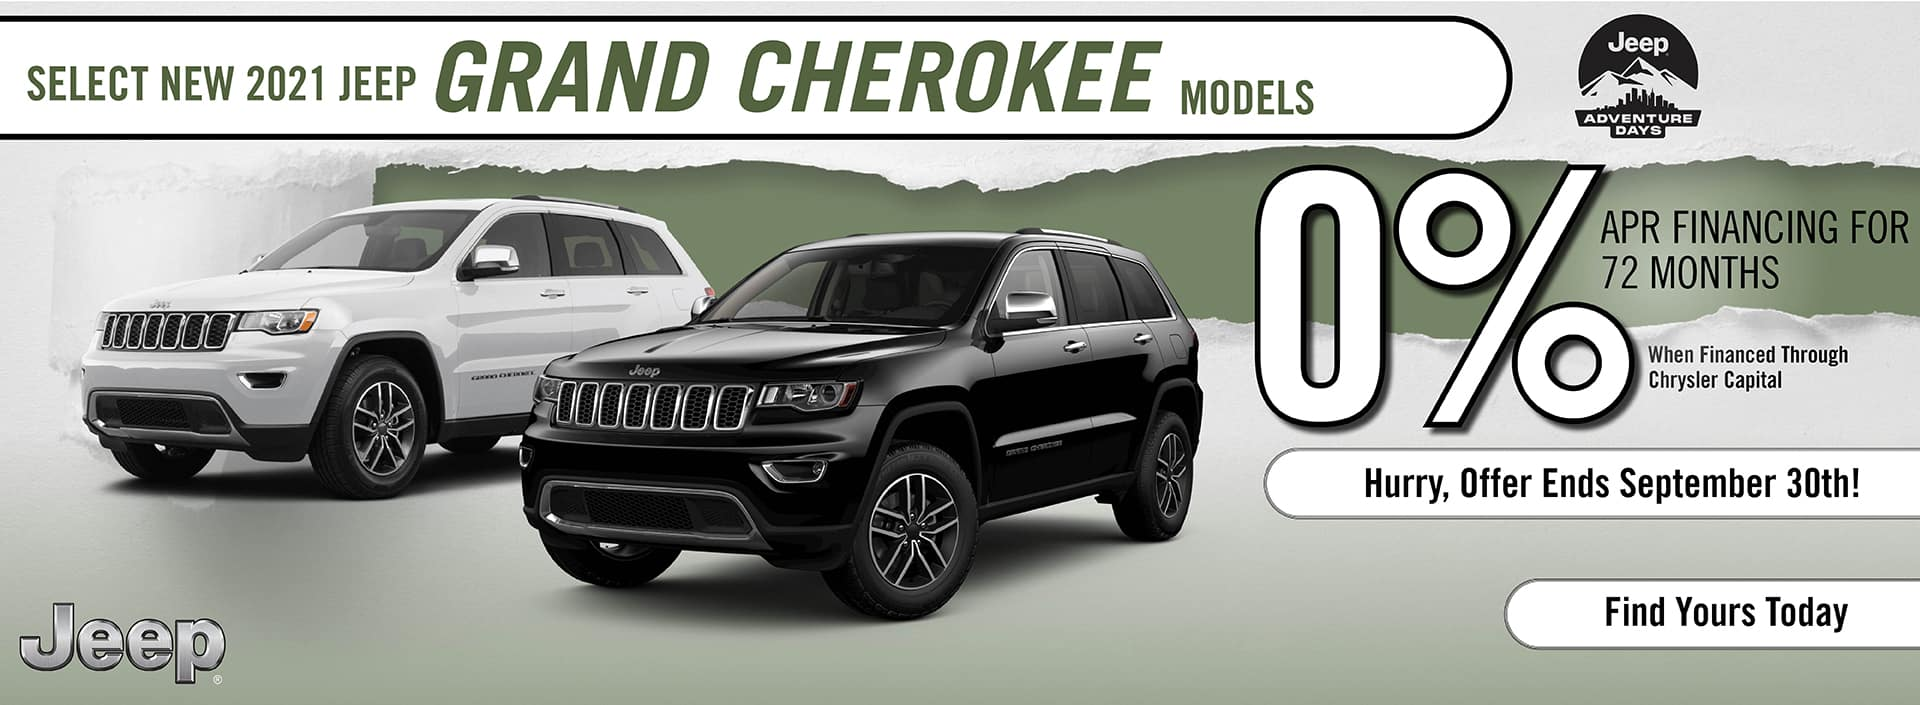 2021 Jeep Grand Cherokee Special Offer | Barre, VT